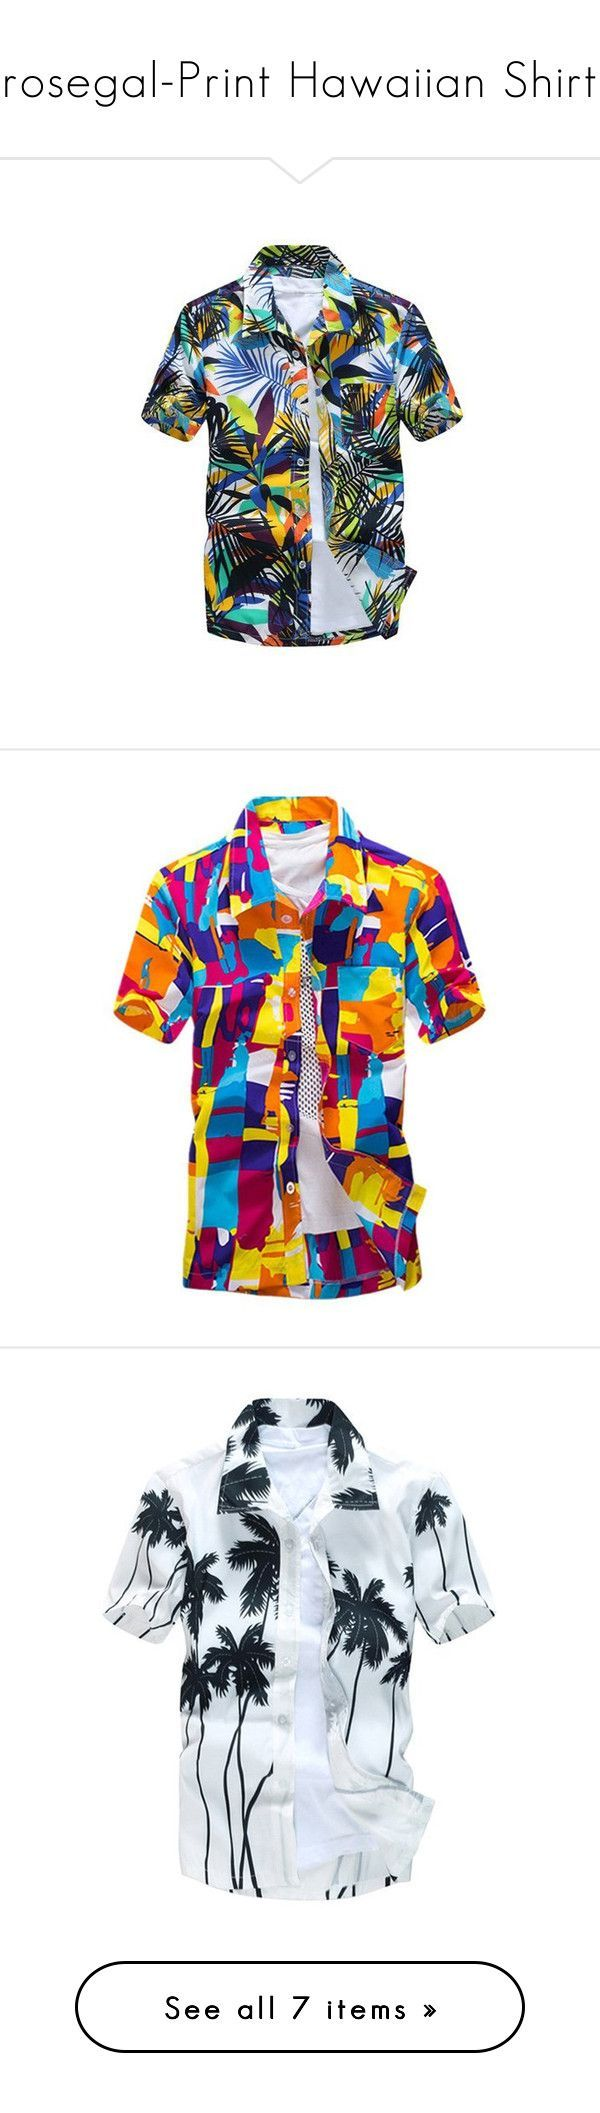 """rosegal-Print Hawaiian Shirt"" by fshionme ❤ liked on Polyvore featuring men's fashion, men's clothing, men's shirts, men's casual shirts, men's hawaiian print shirts, mens hawaiian shirts, mens color block shirt, mens abstract shirts, mens casual short-sleeve button-down shirts and mens palm tree shirt - cheap womens clothes online, shop name brand clothes online, retail clothing *ad"